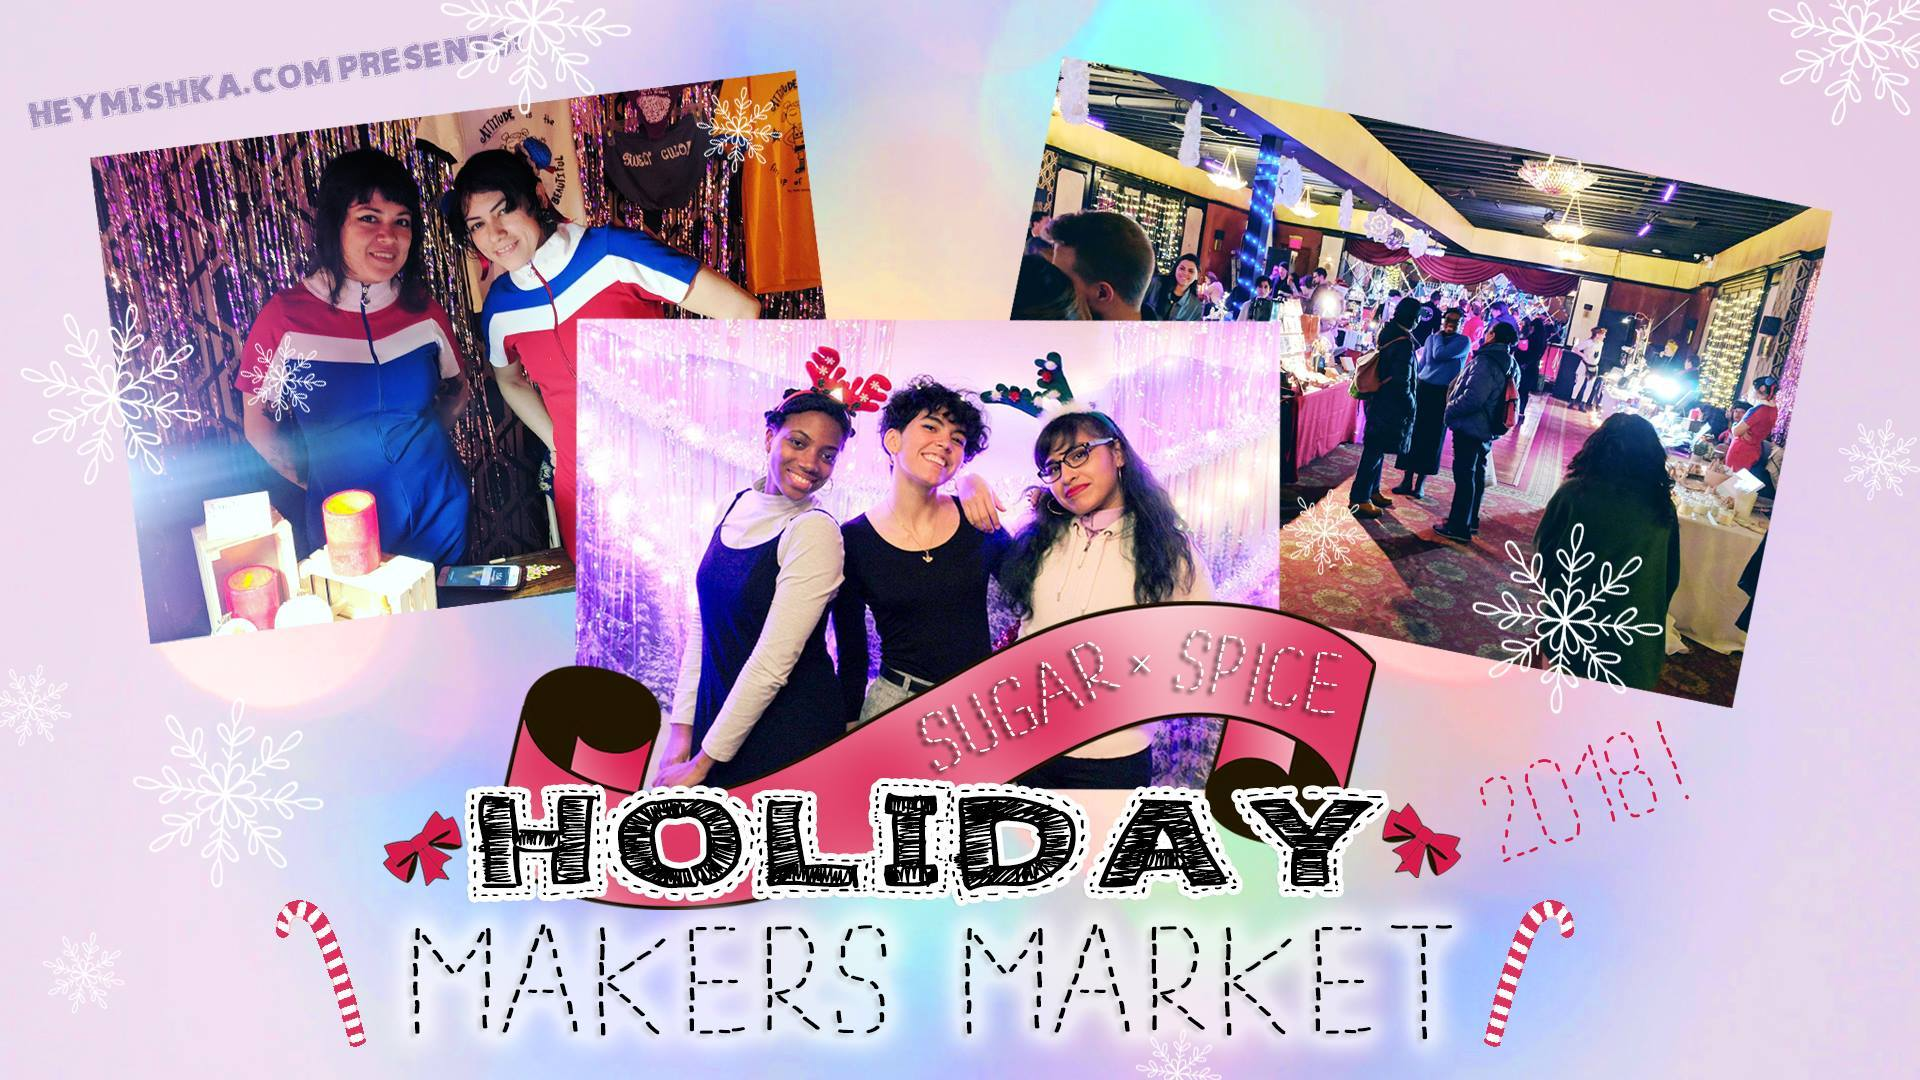 2018 Sugar x Spice Holiday Makers Market - Greenpoint, Brooklyn - Behind The Scenes Video